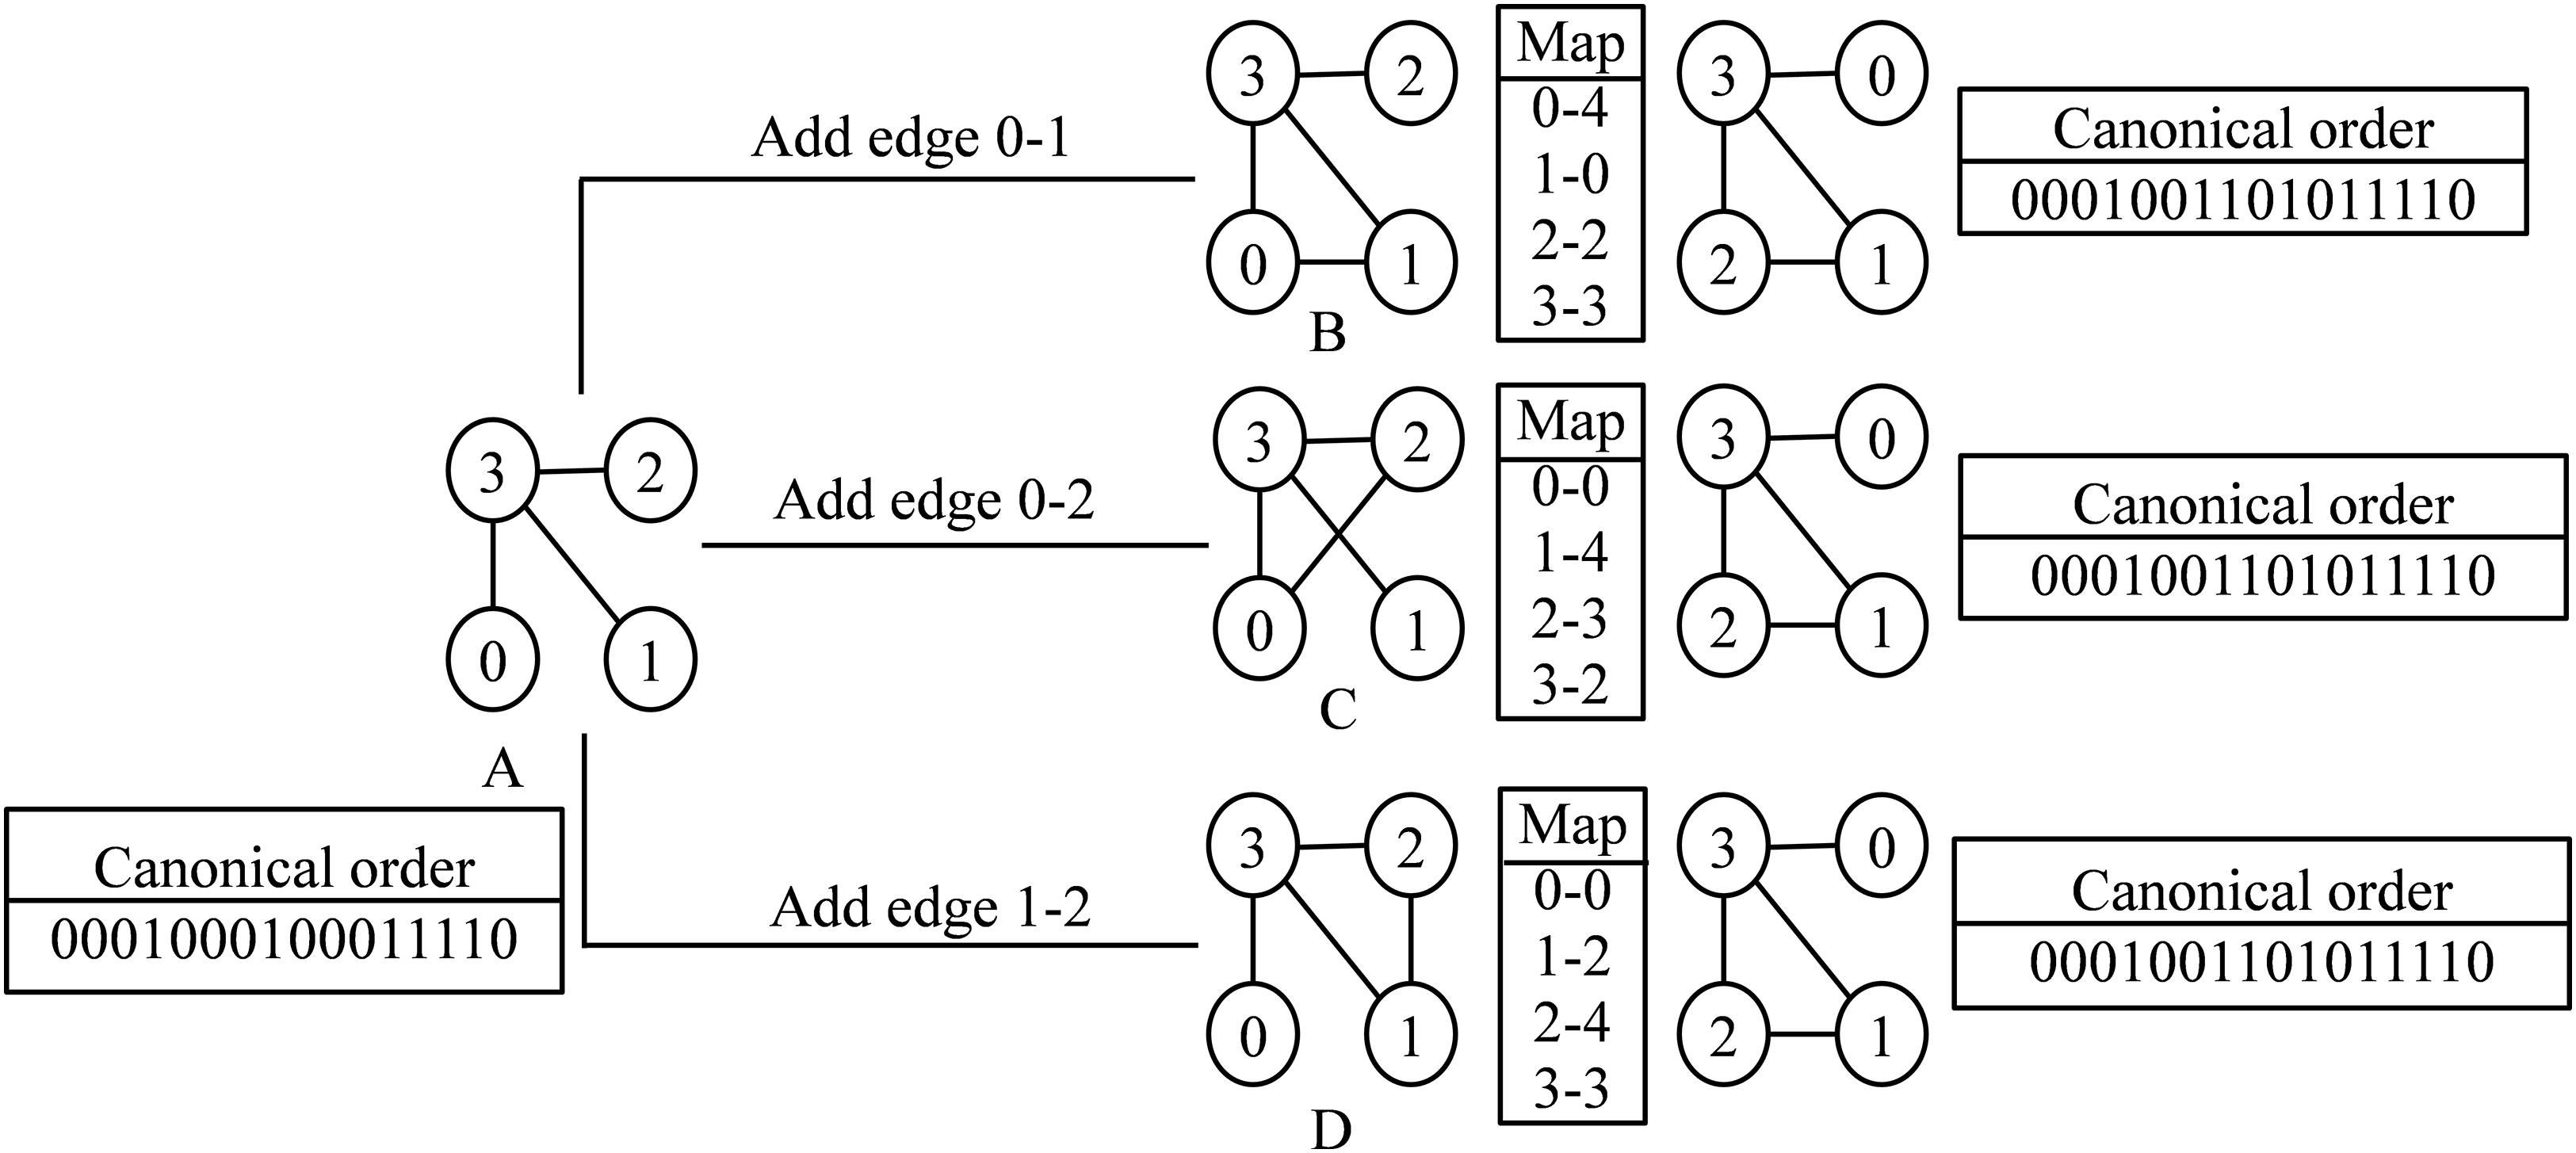 application of dynamic expansion tree for finding large network motifs in biological networks